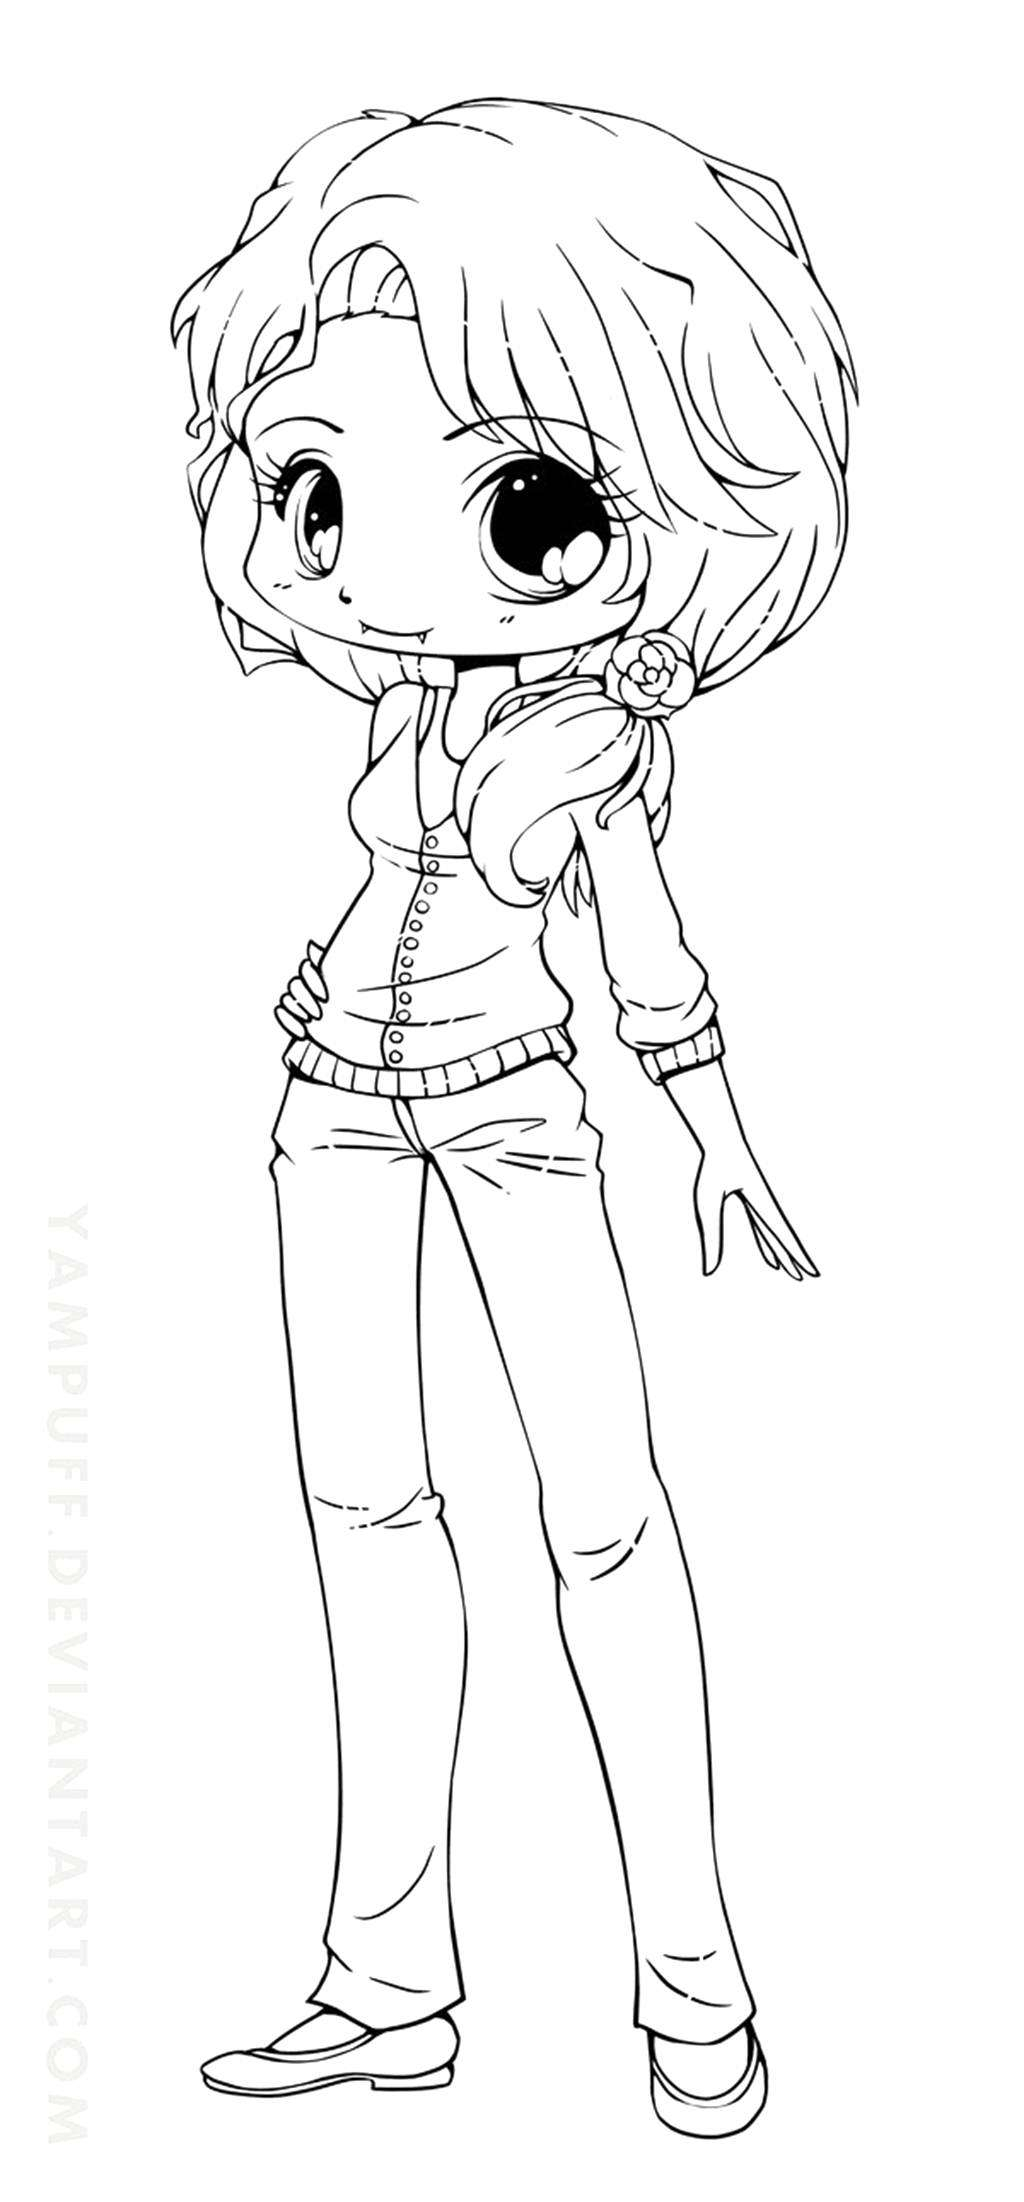 coloring pages anime chibi anime chibi coloring pages coloring pages to download pages anime coloring chibi